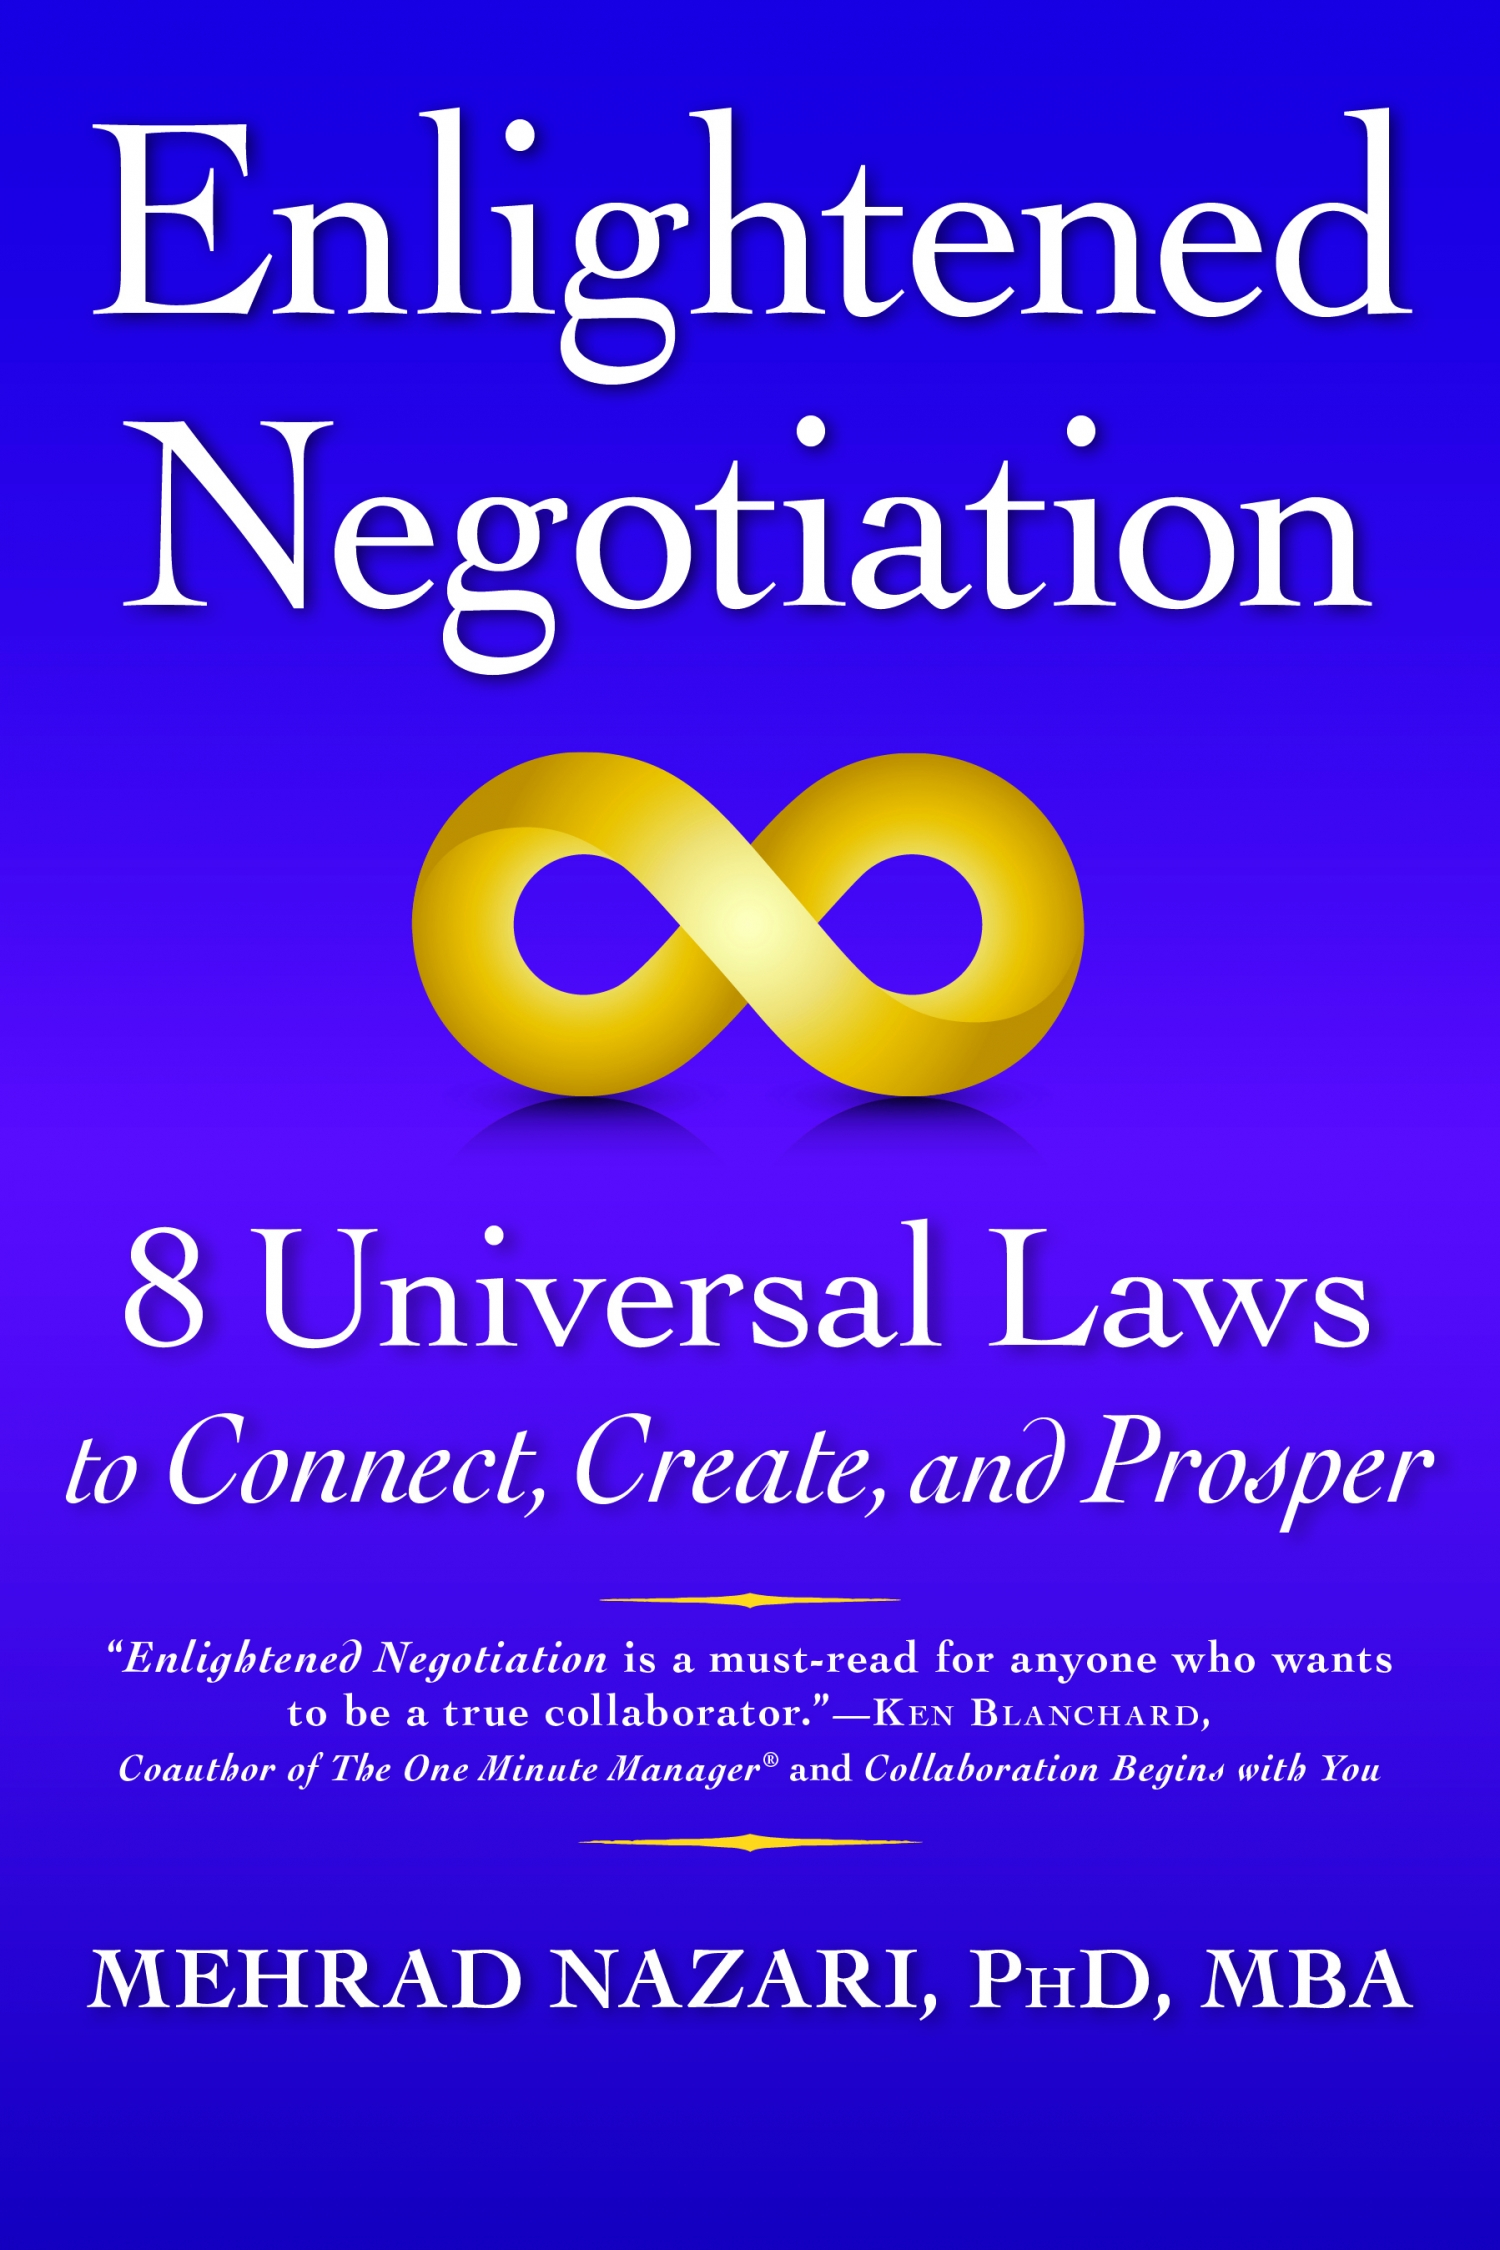 negotiation article review We provide a focused review of the extant negotiation literature to address four highly salient objectives for contract negotiations: how to maximize the likelihood of reaching a [good] agreement how to reach an agreement that will fulfill its intended purpose how to reach an agreement that will last and how to reach an agreement that will.